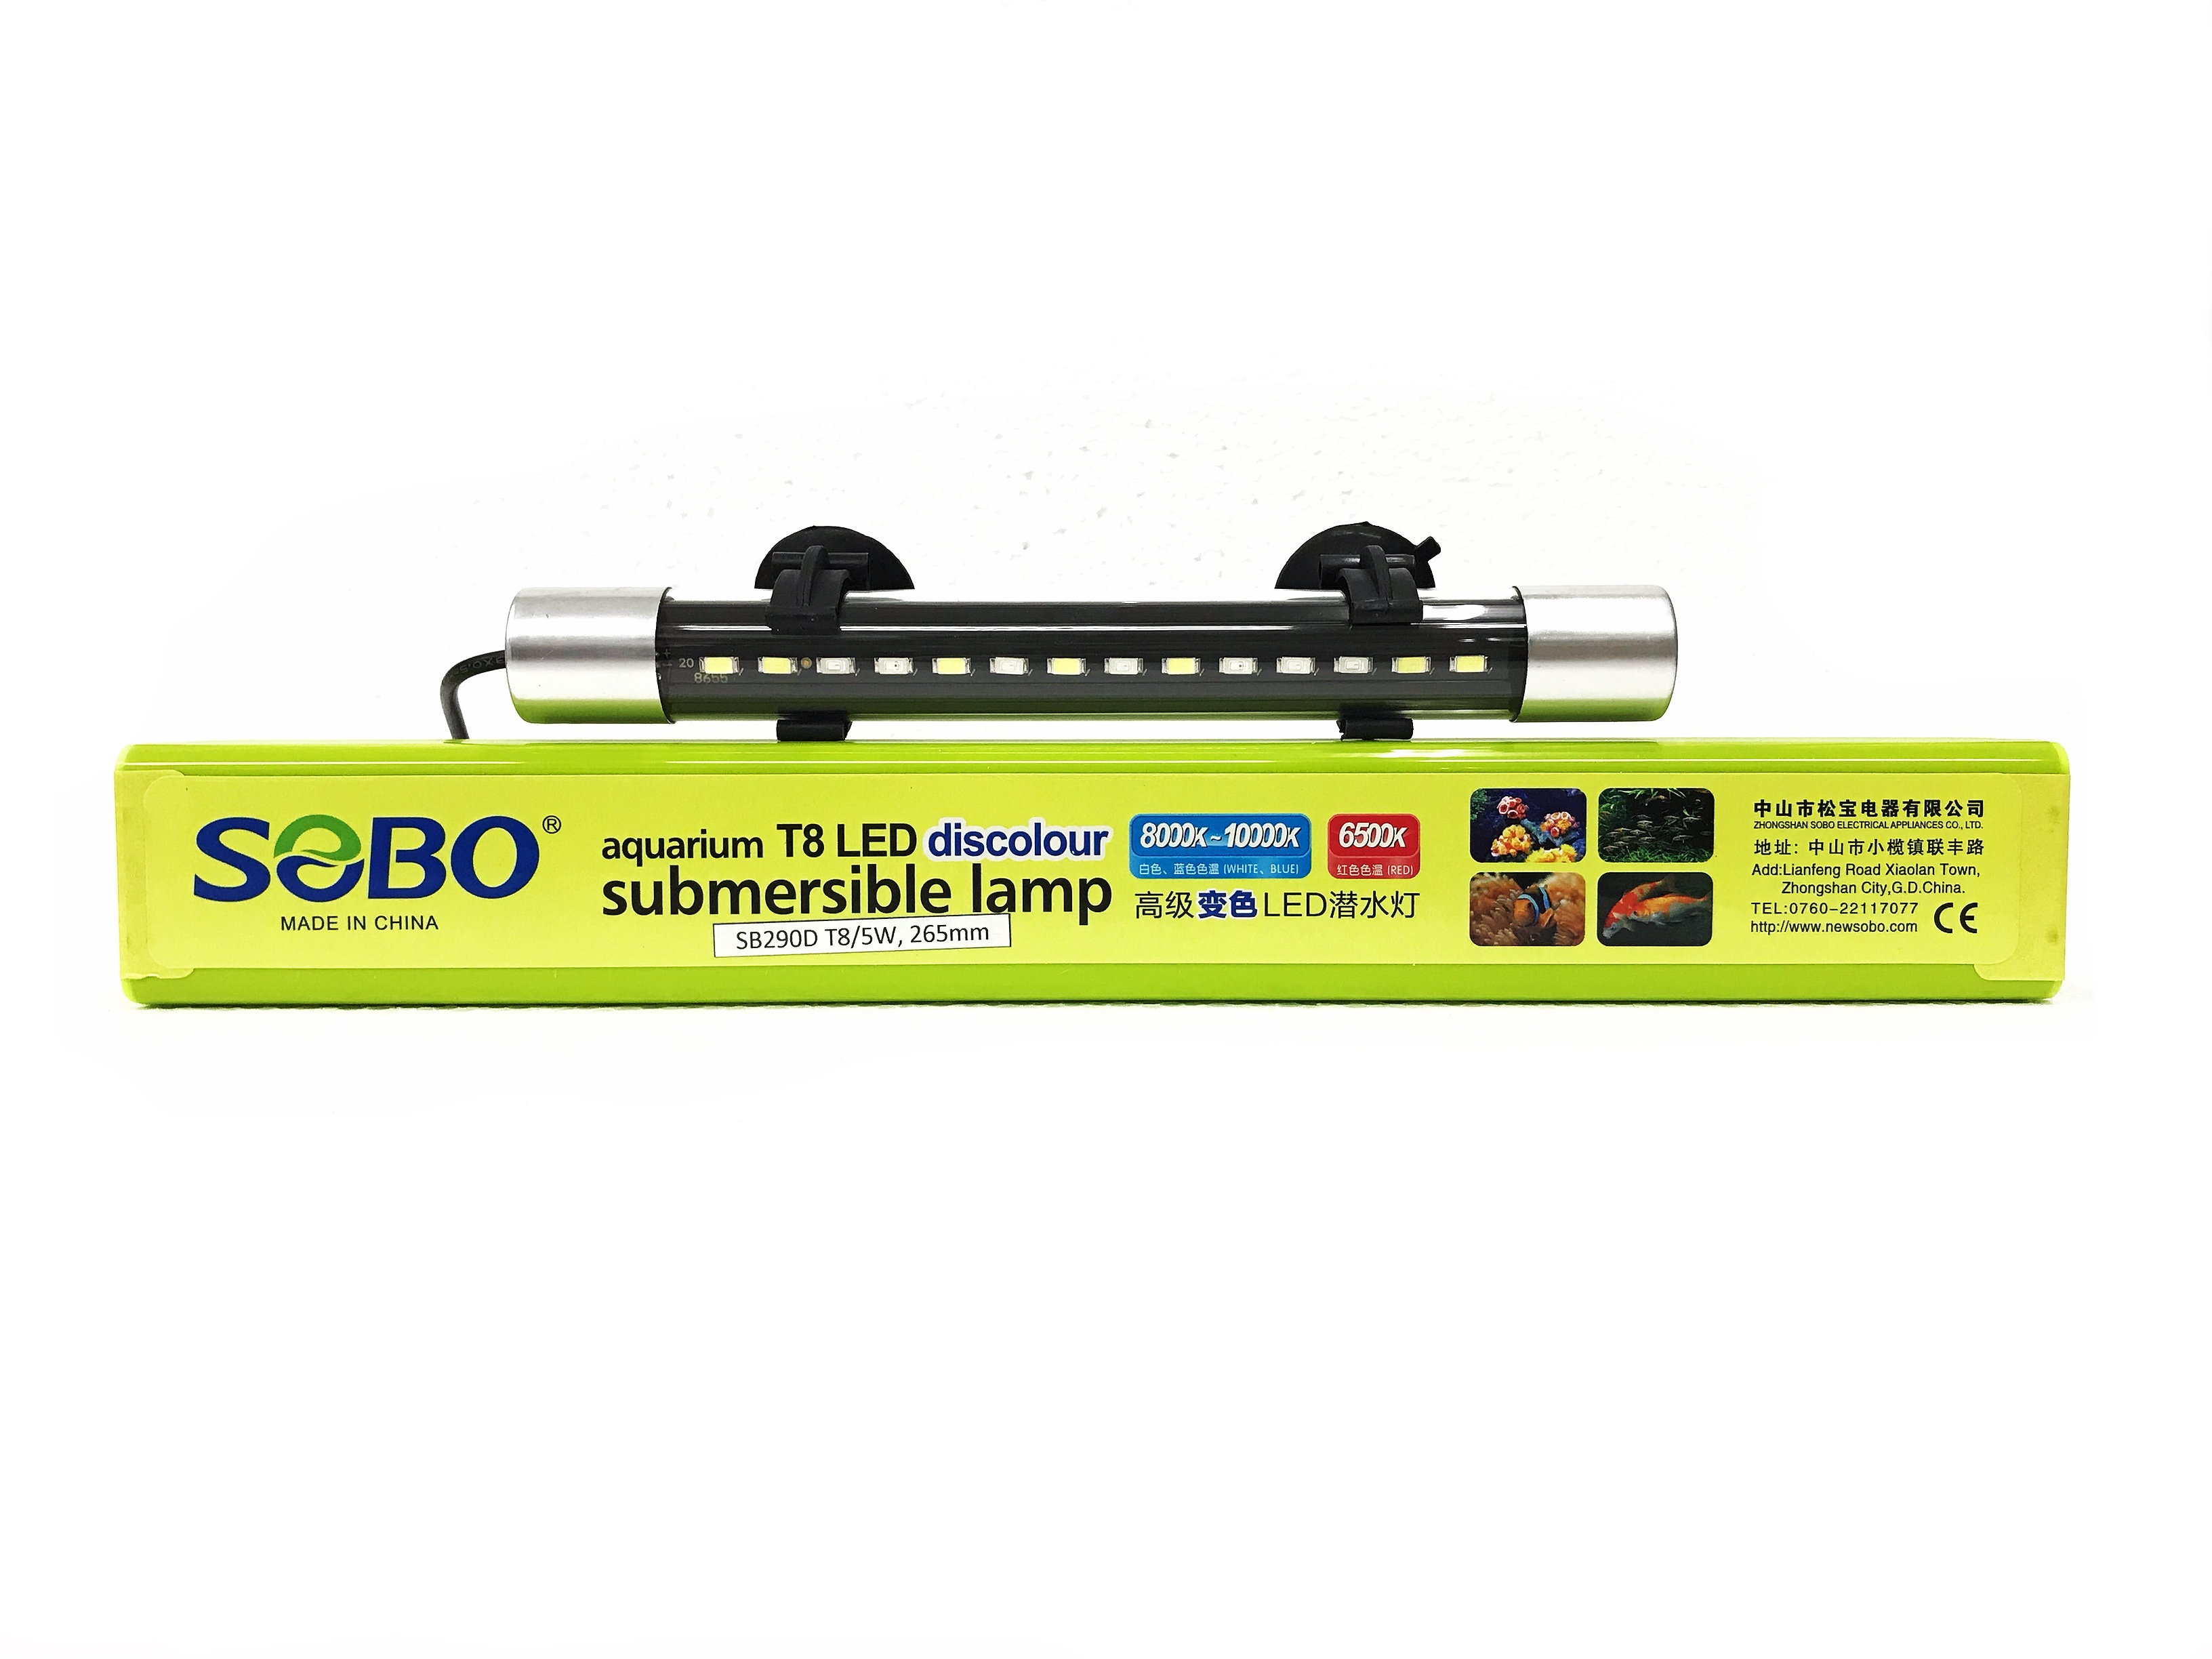 Sobo T8 LED Discolour Submersible Lamp